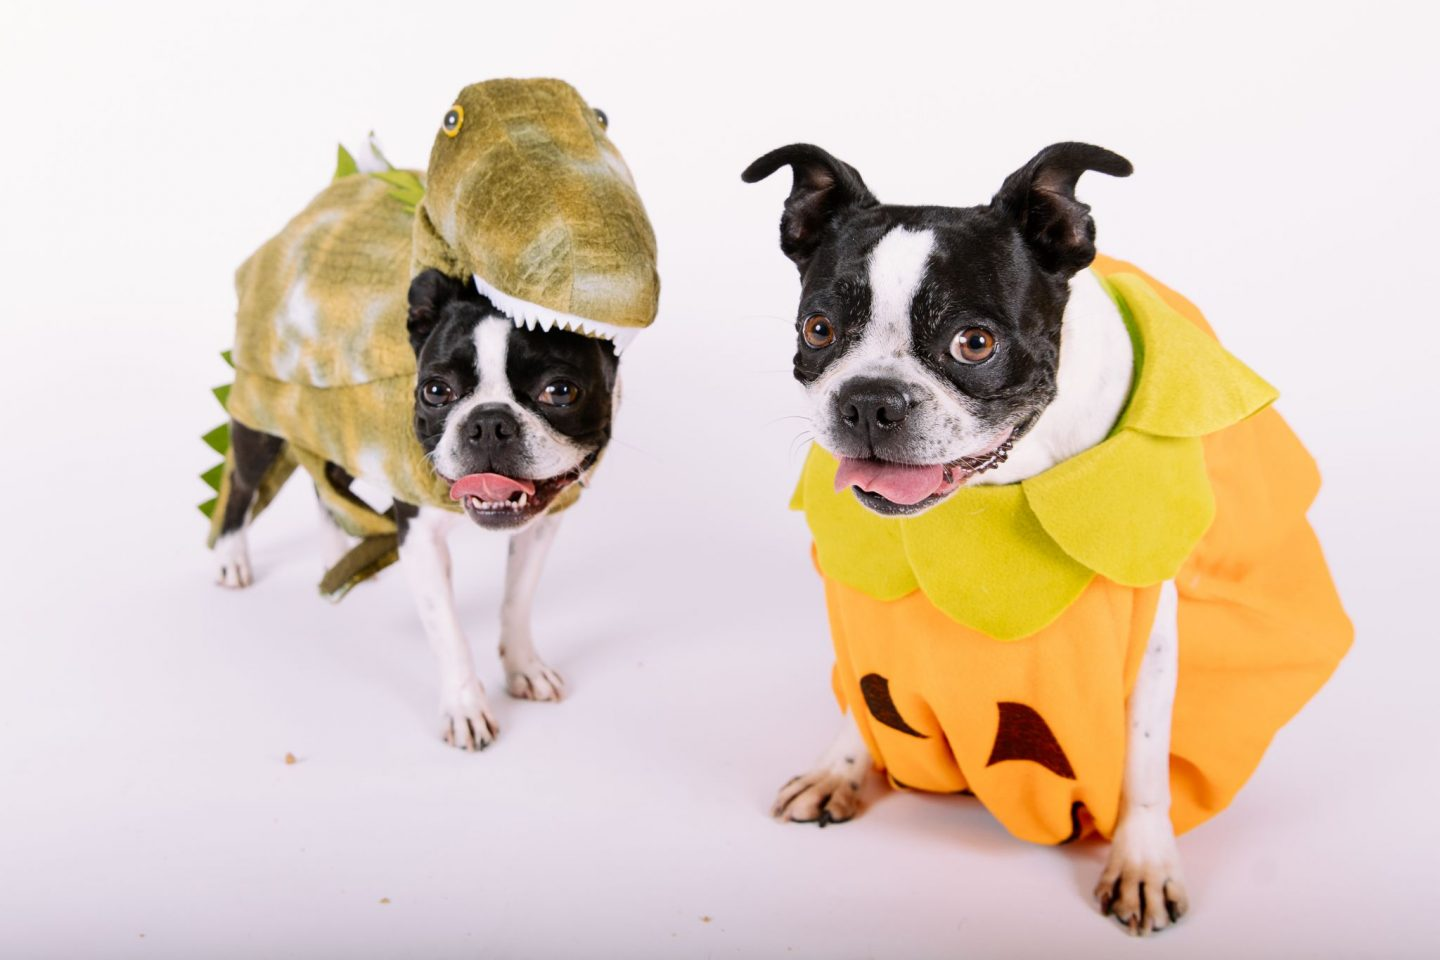 Roxie and Bella, Boston Terrier sisters from different misters,  model for the Seattle Goodwill annual pet Halloween photoshoot and look adorable doing it